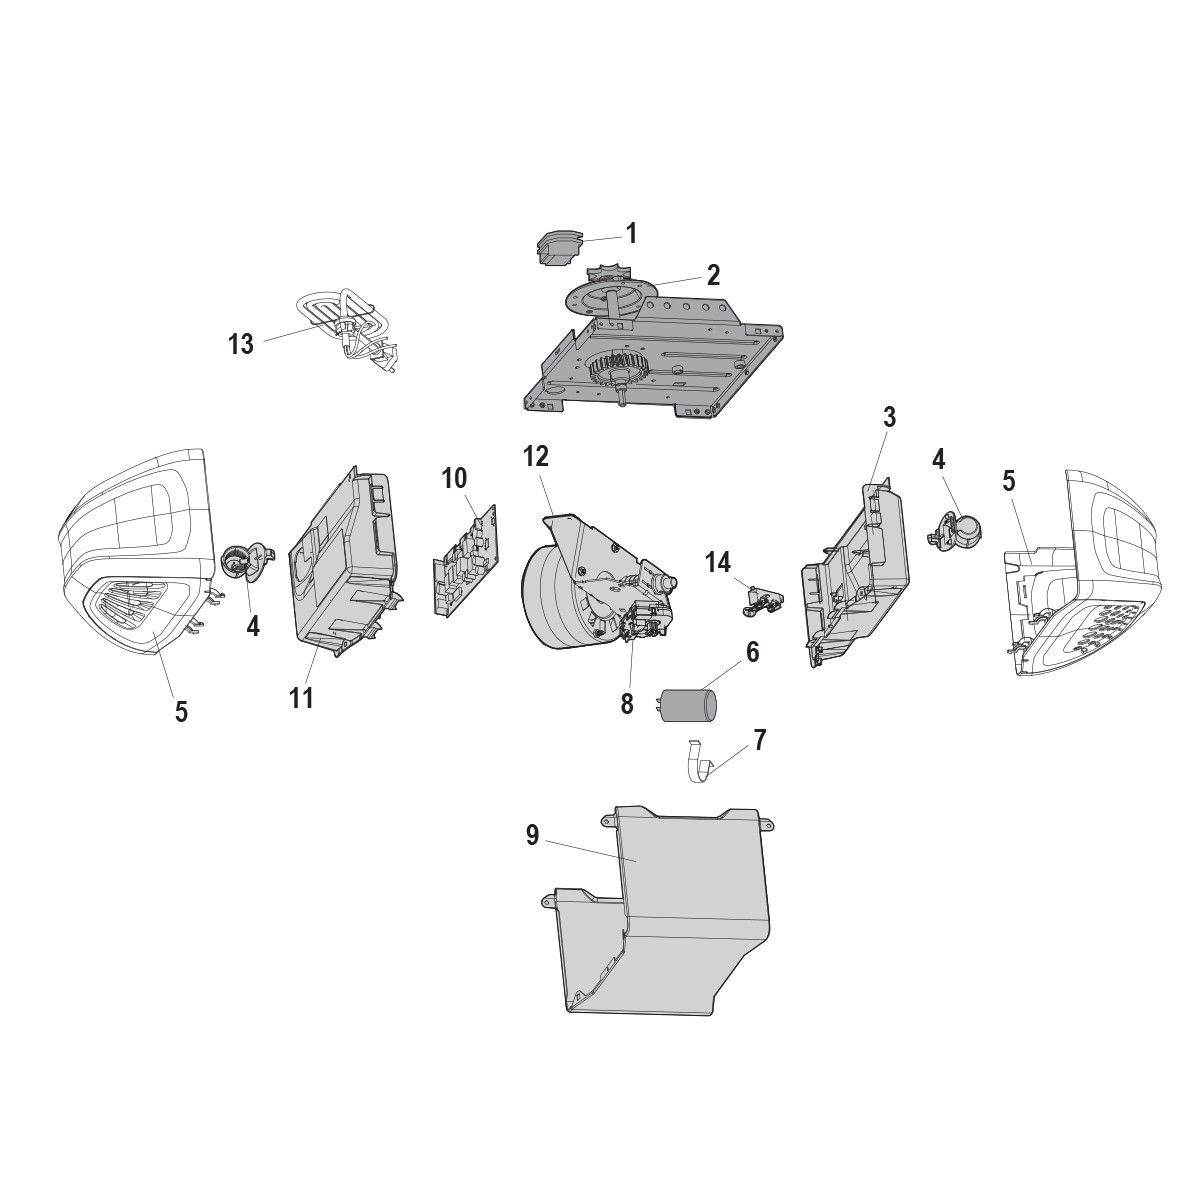 Chamberlain Hd420ev Replacement Parts